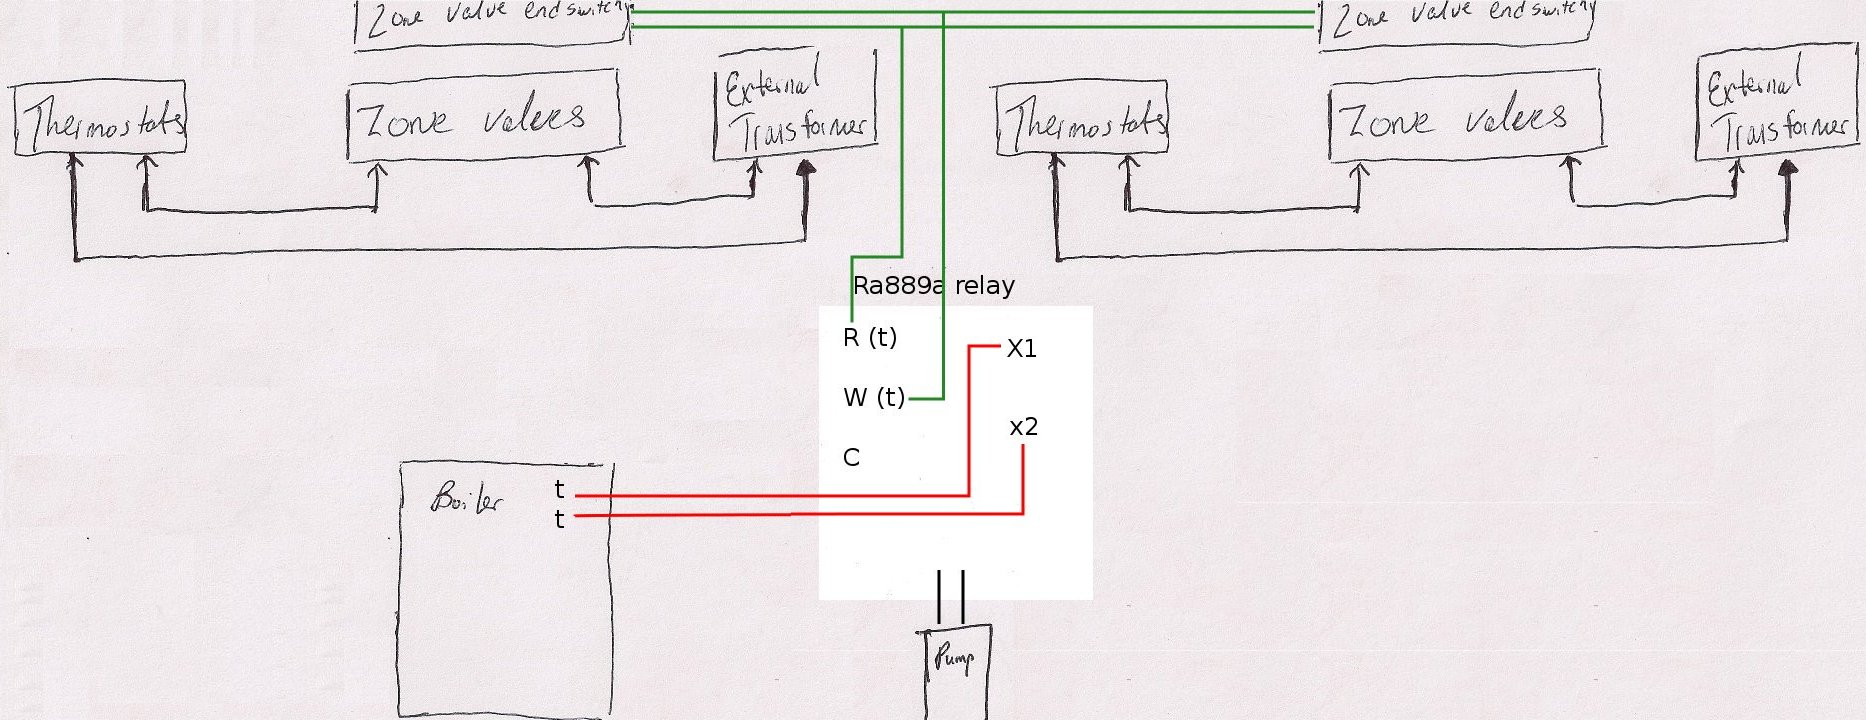 Honeywell Ra832a Wiring Diagram : 31 Wiring Diagram Images